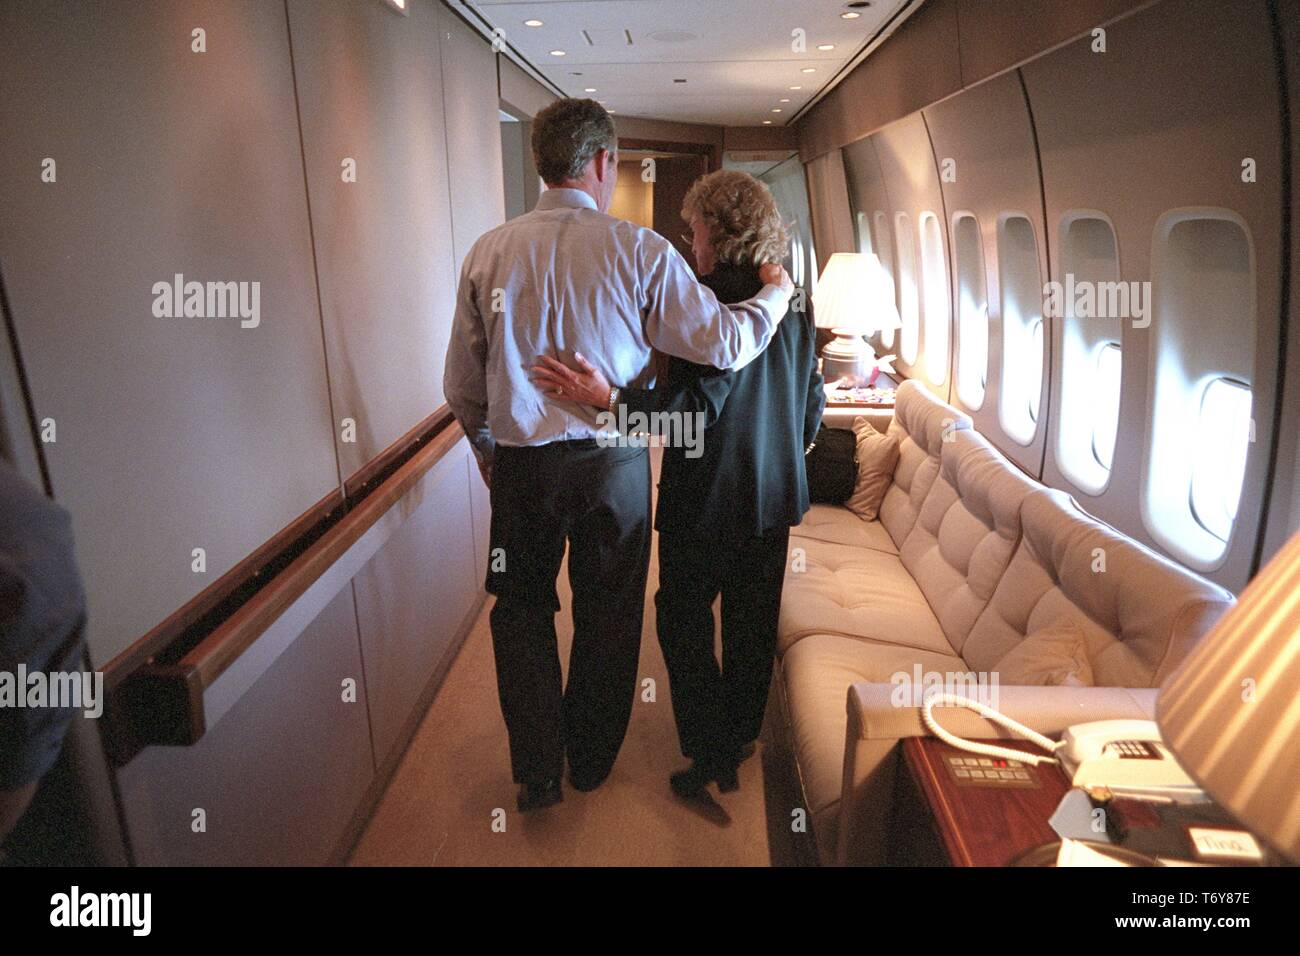 President George W. Bush with Harriet Miers, White House Counsel, aboard Air Force One, September 11, 2001. Image courtesy National Archives. () - Stock Image